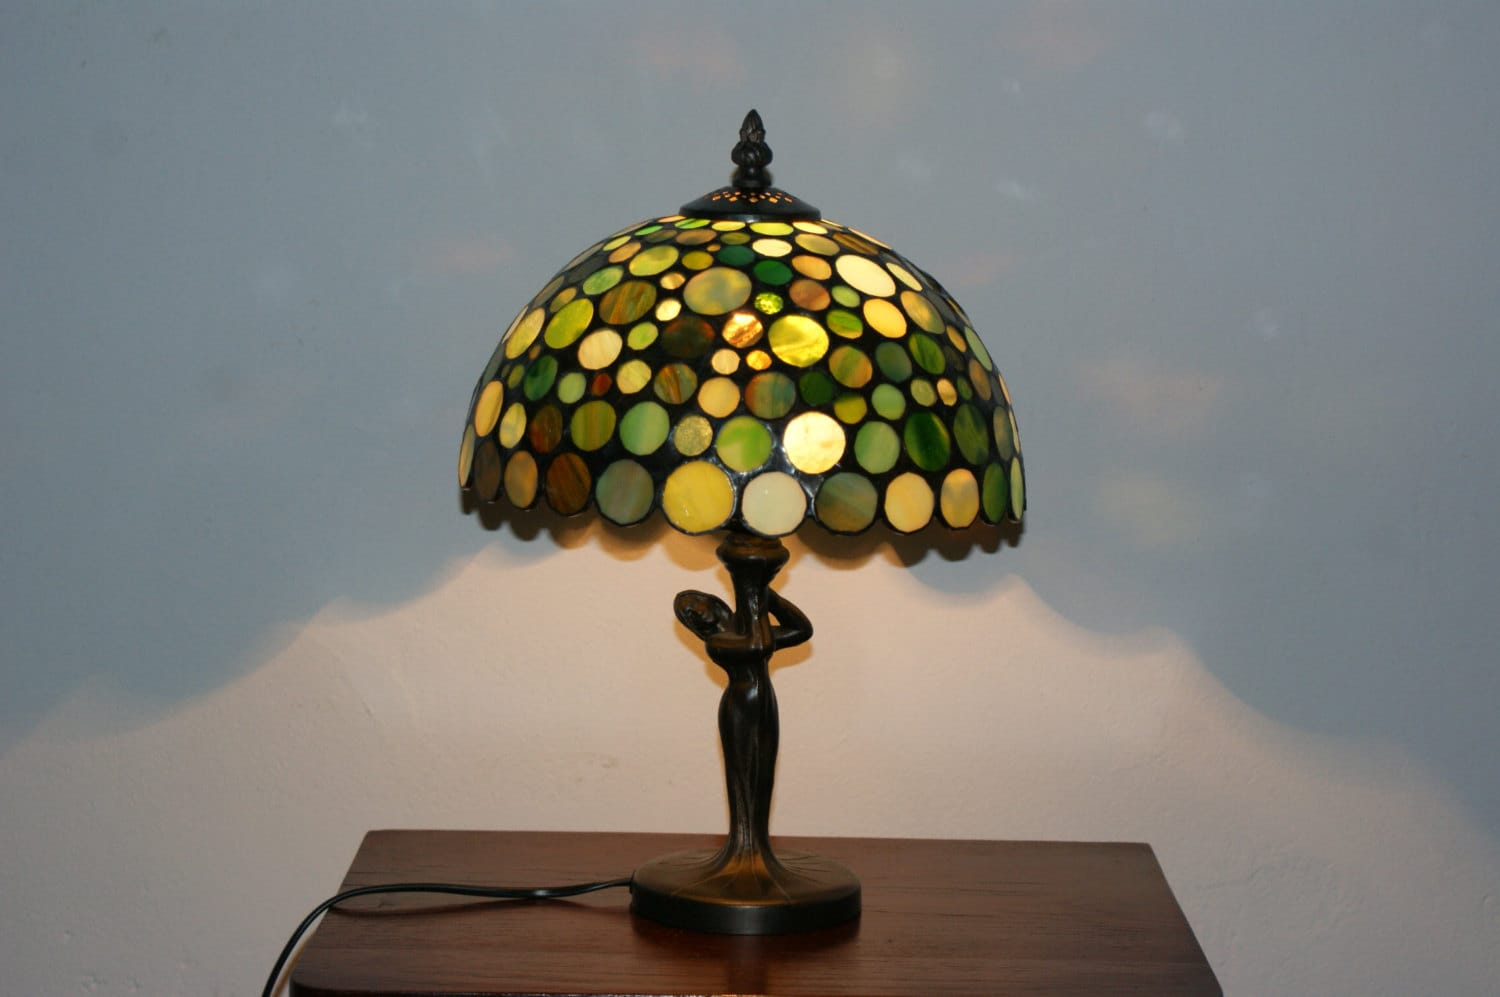 Green Stained Glass Lamp Mosaic Tiffany Lamp - Anazie